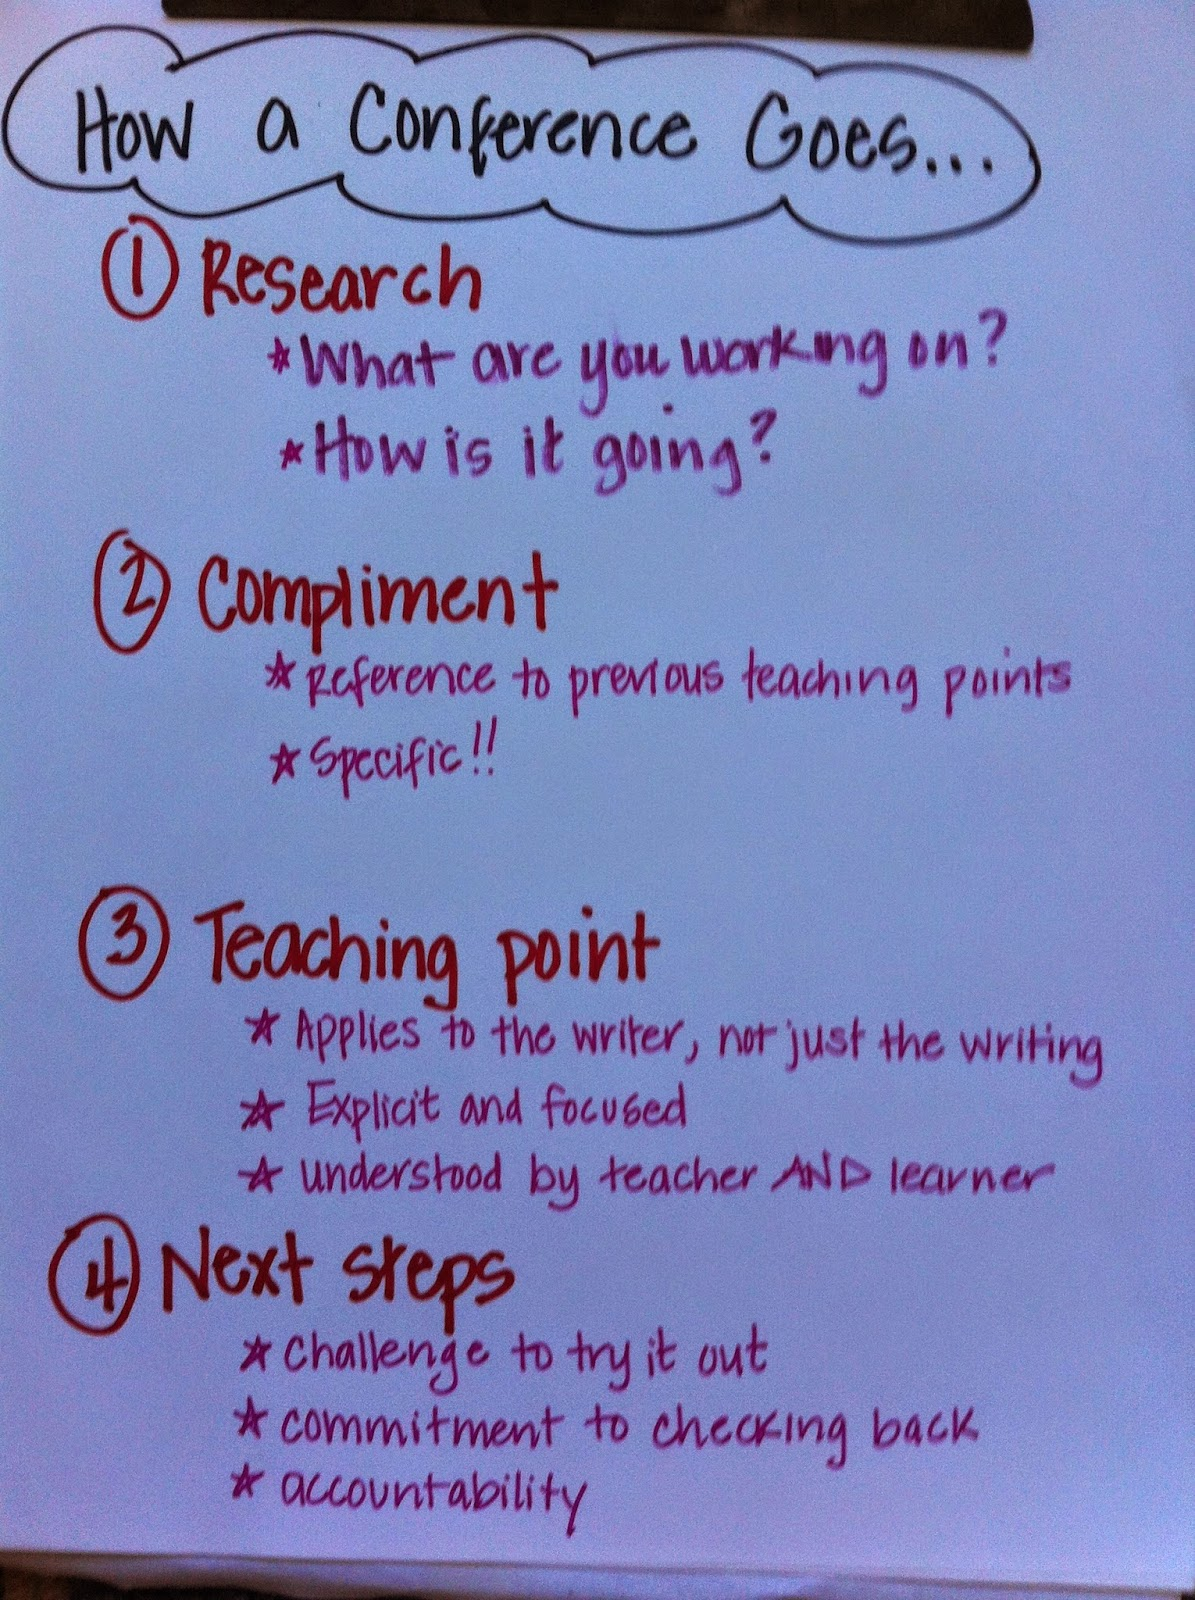 writing conferences with students The provision of prompt feedback and suggestions during the act of writing helps students to take a closer look at their work and improve it using writing conferences, teachers can guide or model the pattern of introspective questioning, which will stimulate students to reflect on their writings.